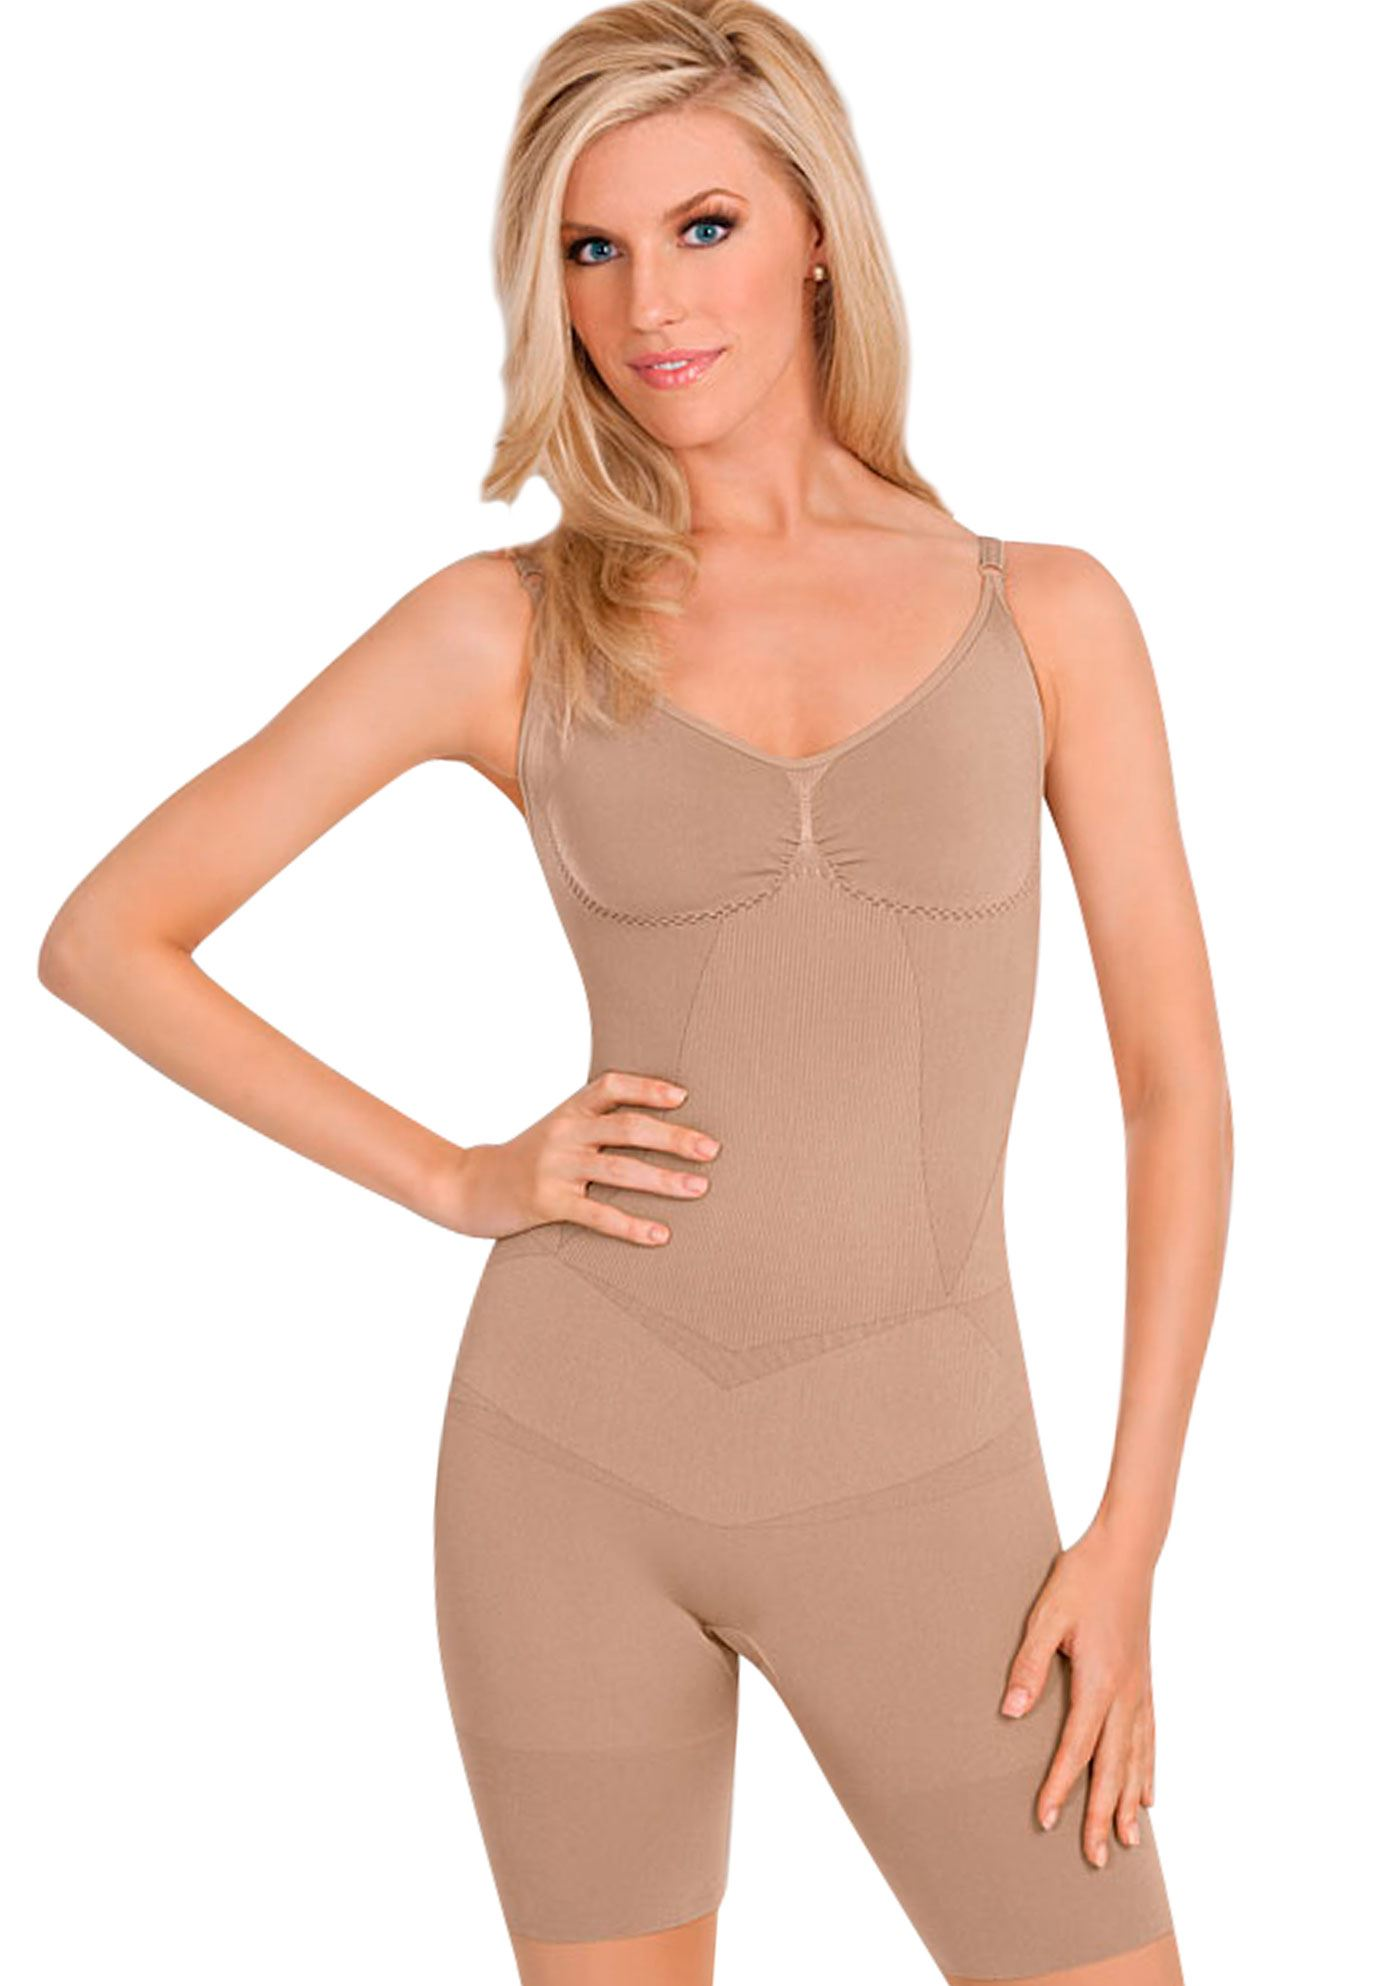 Julie France by Euroskins Boxer Style Body Shaper,